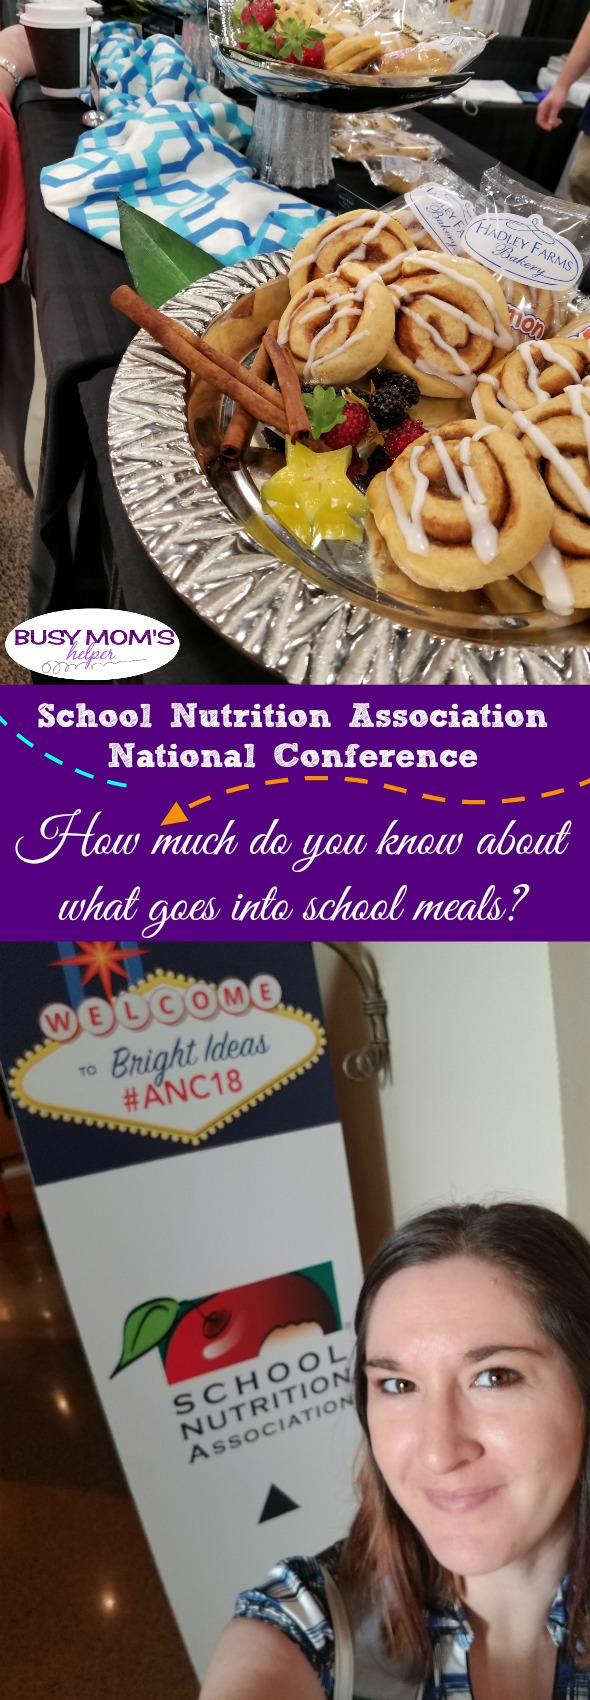 How much do you know about what goes into school meals? A behind the scenes look at the School Nutrition Association's Annual National Conference #AD #ANC18 #schoollunch